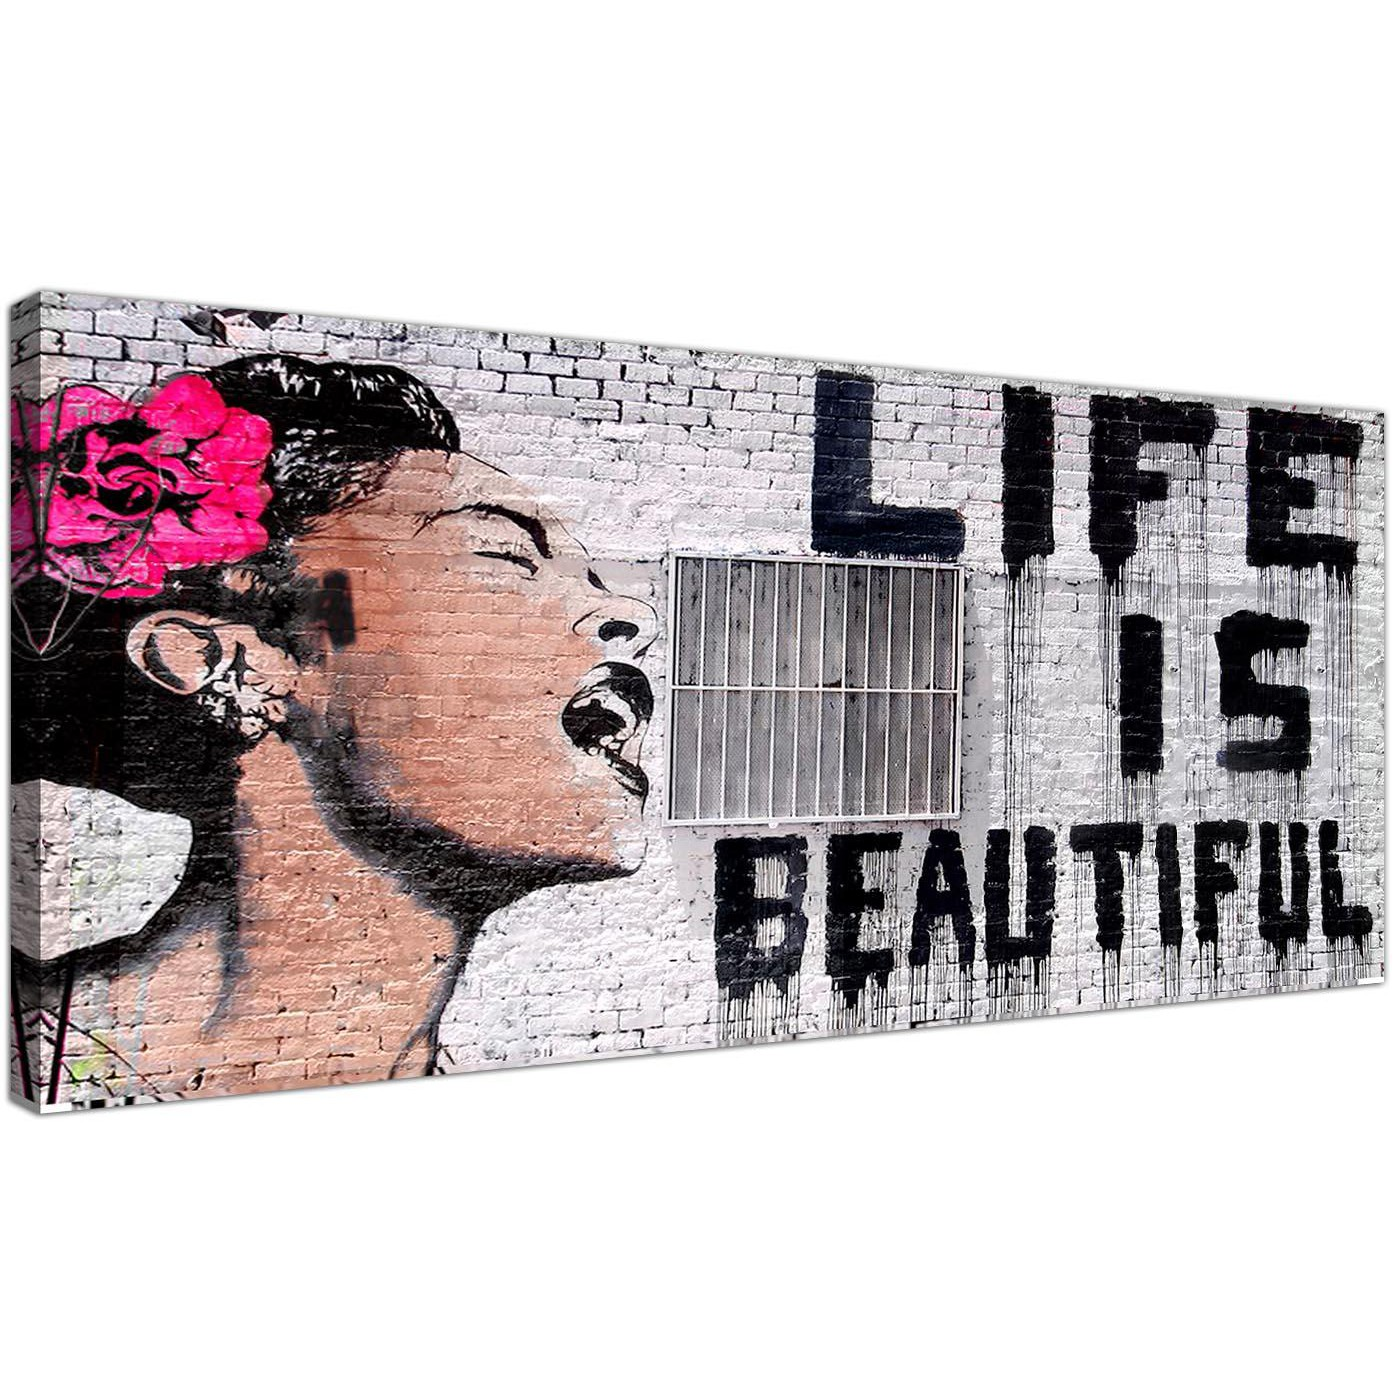 Modern graffiti canvas pictures panoramic display gallery item 1